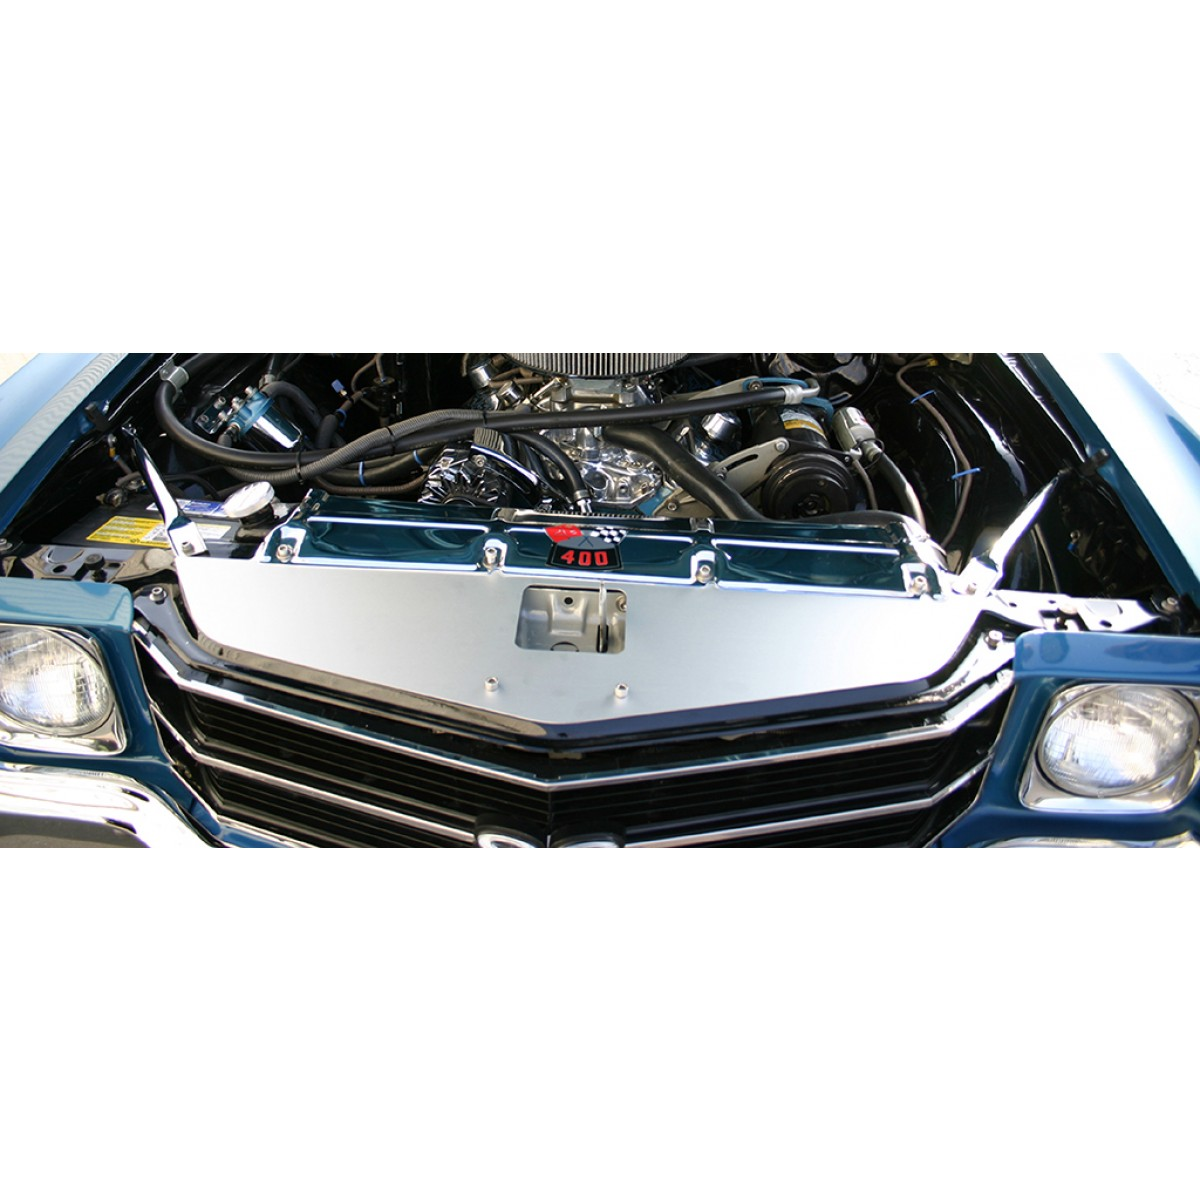 hight resolution of 1970 1972 el camino show panel radiator cover panel undercover rh code510 com 1969 el camino wiring diagram 1972 chevy nova wiring diagram